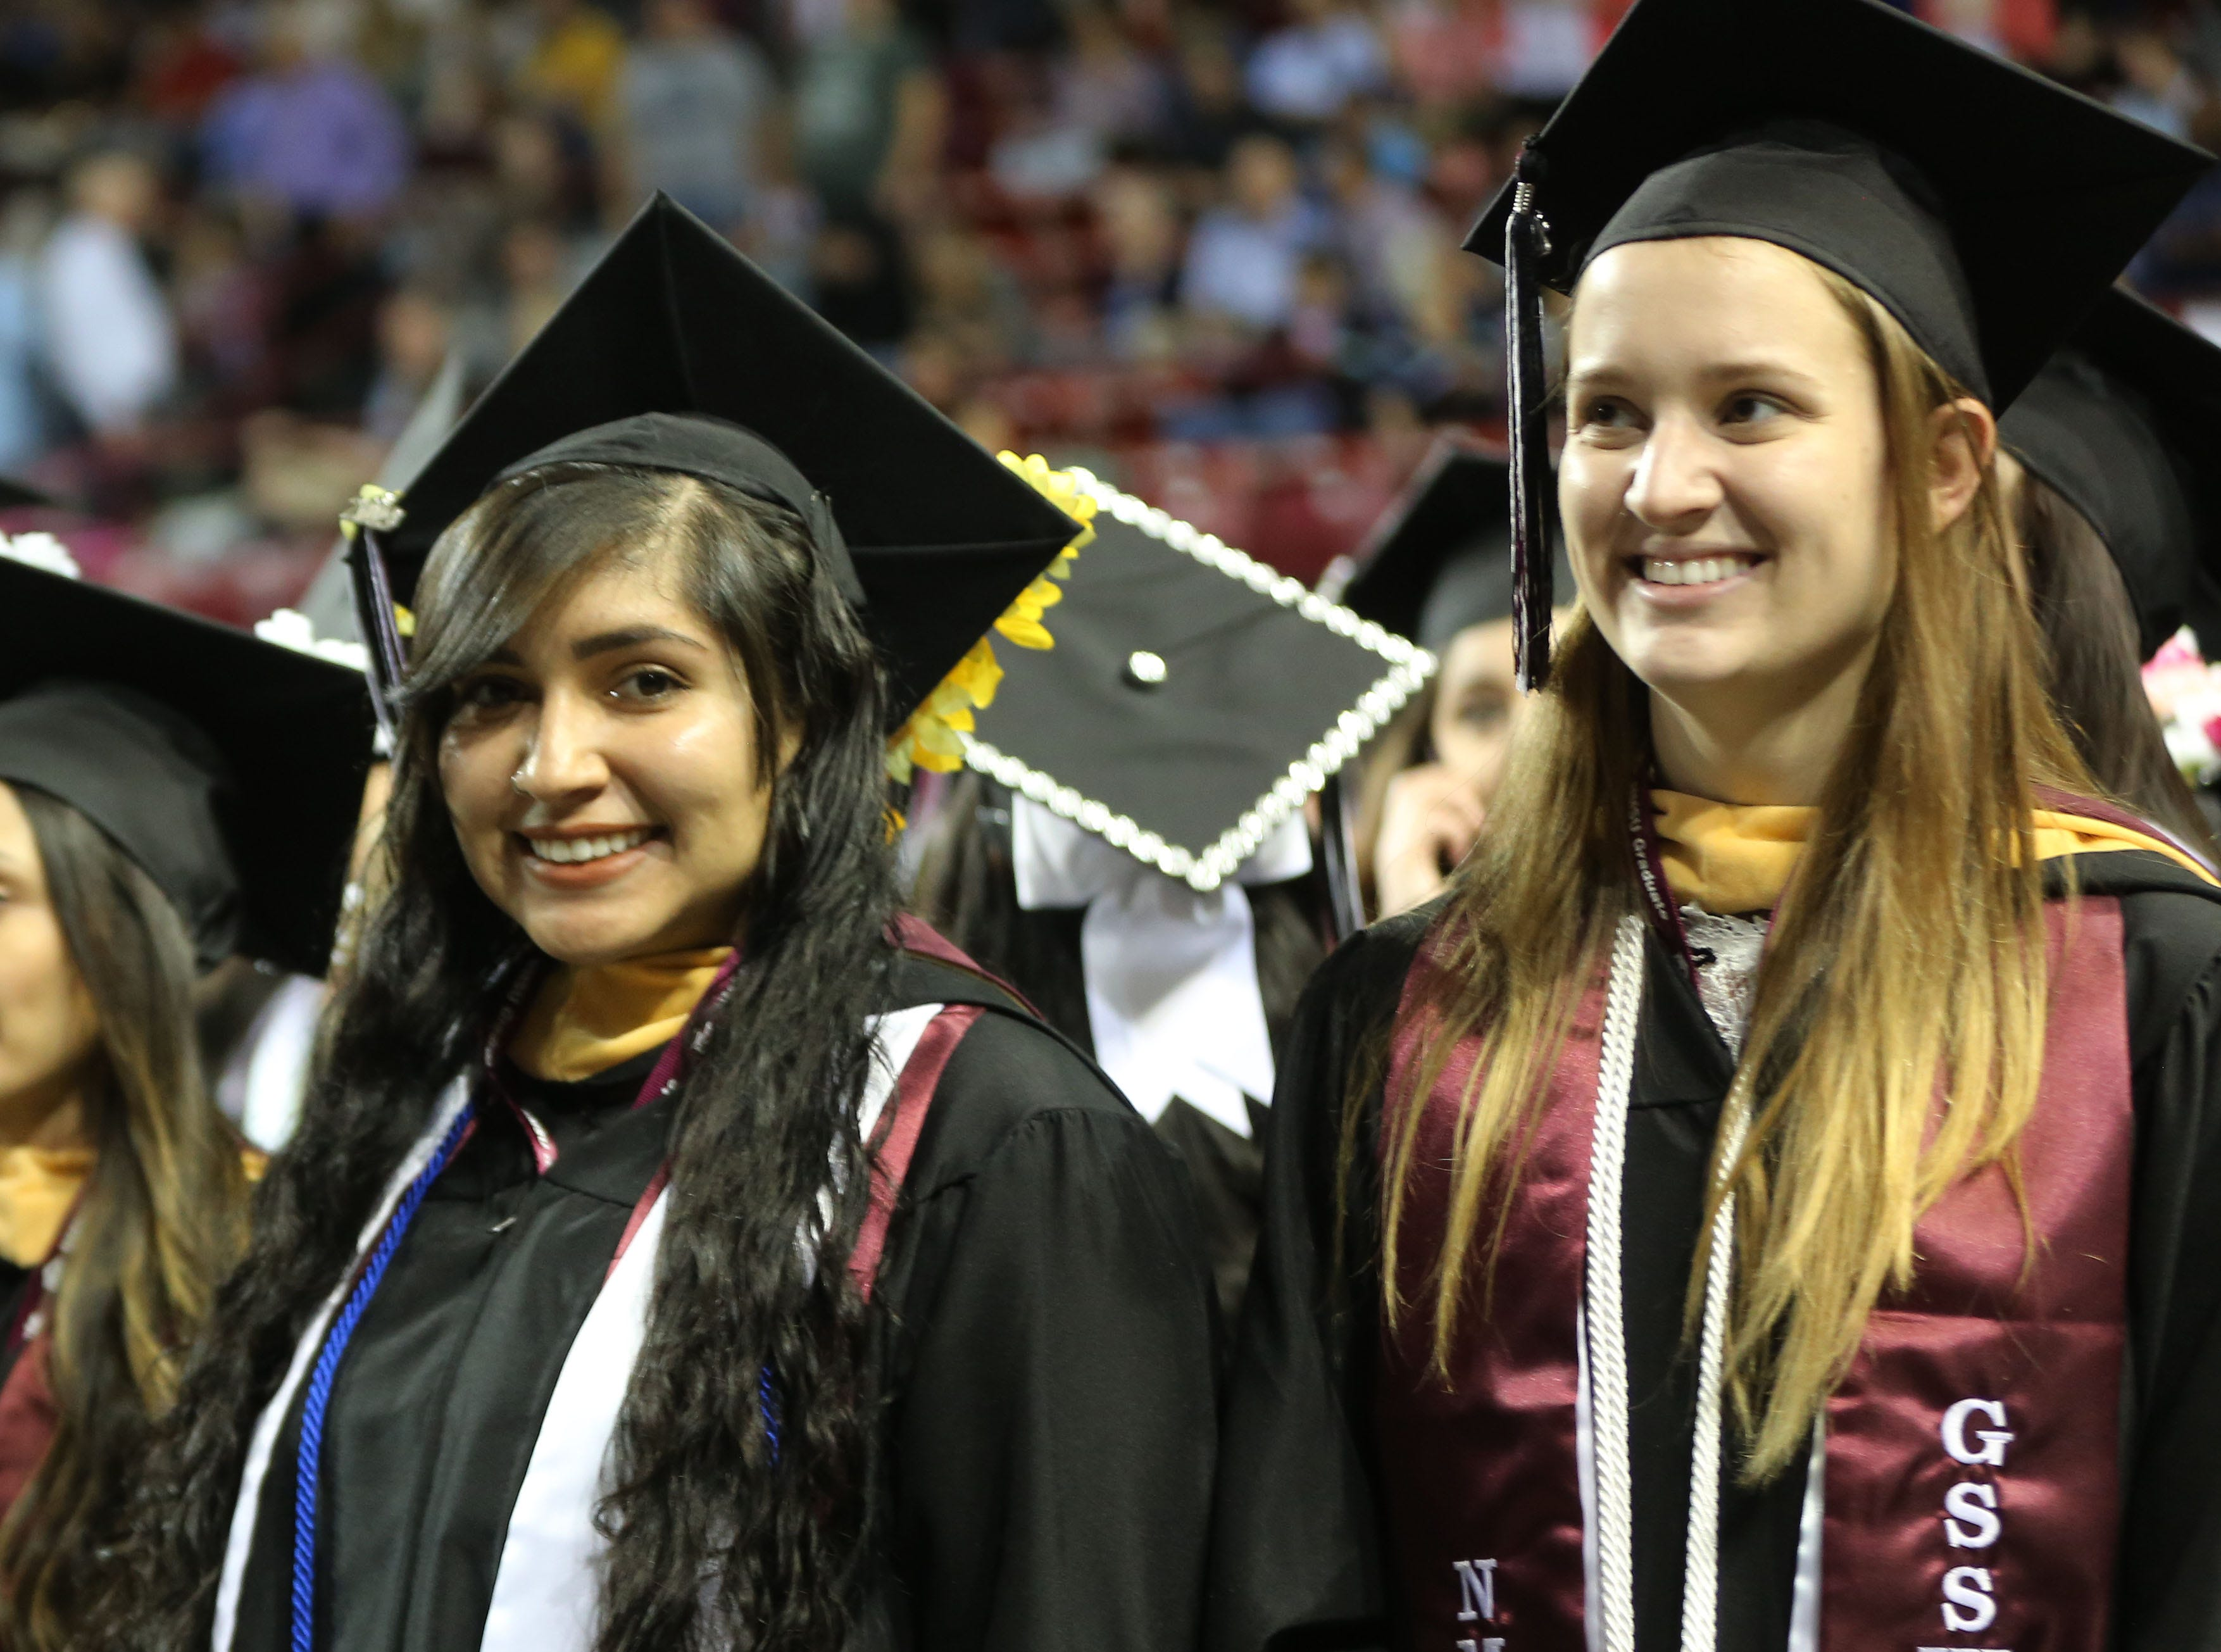 New Mexico State University students smile, as they wait to be seated during commencement, Saturday May 11, 2019.